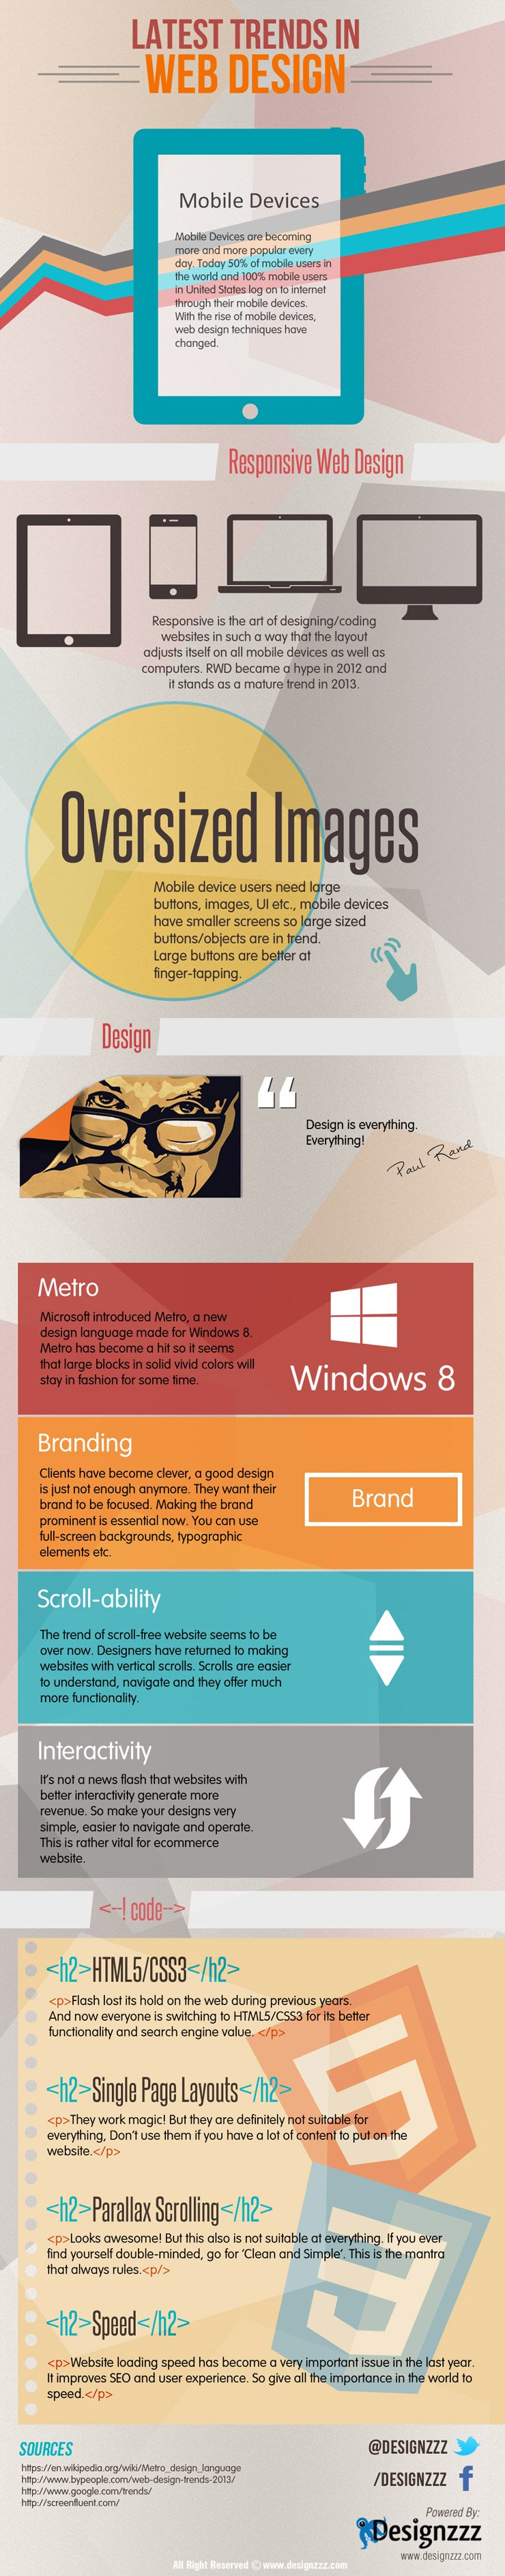 Latest Trends in Web Design